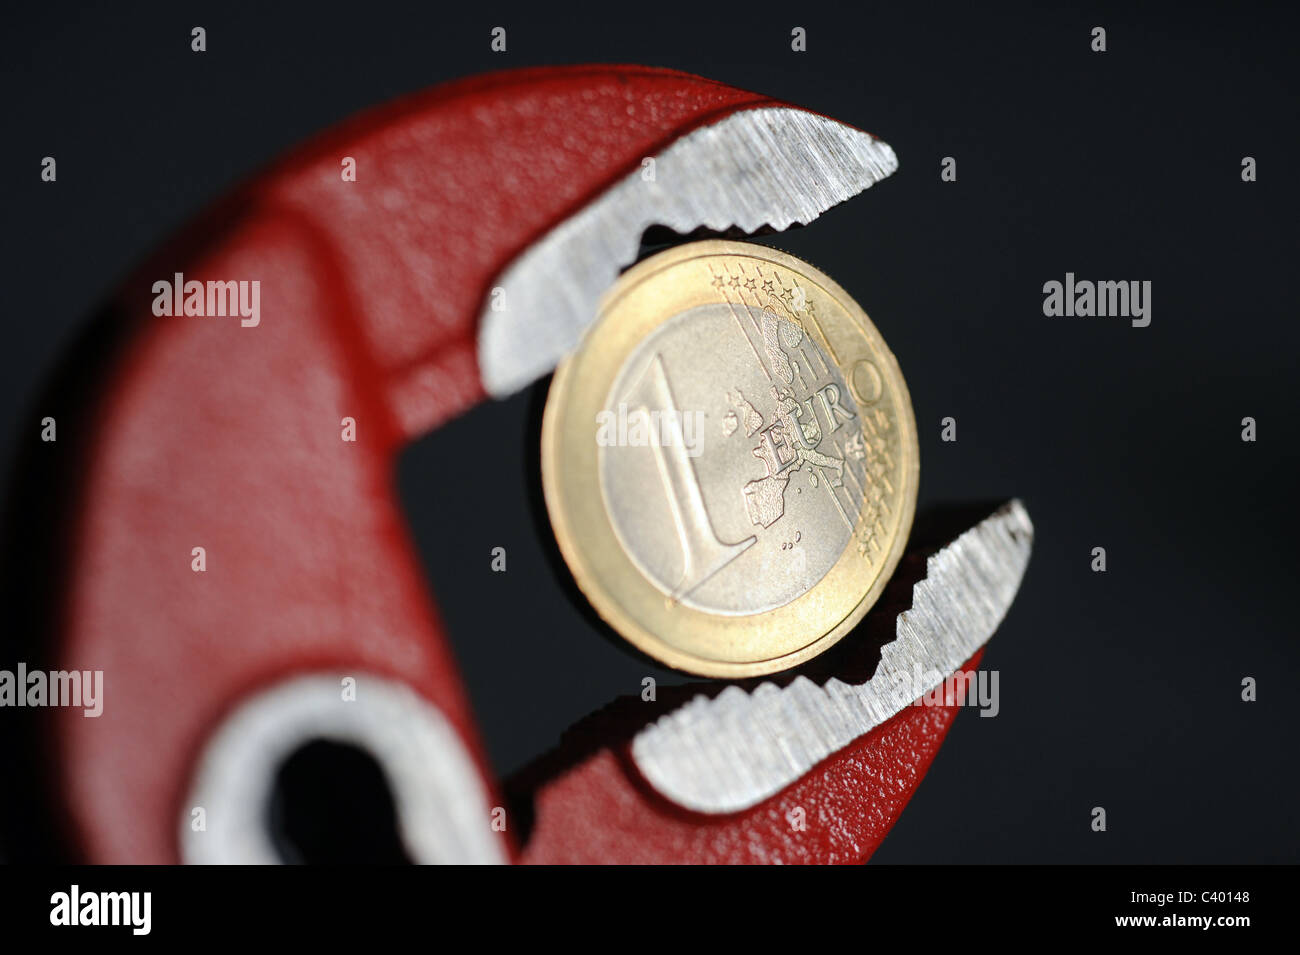 1 Euro coin in an adjustable wrench - Stock Image